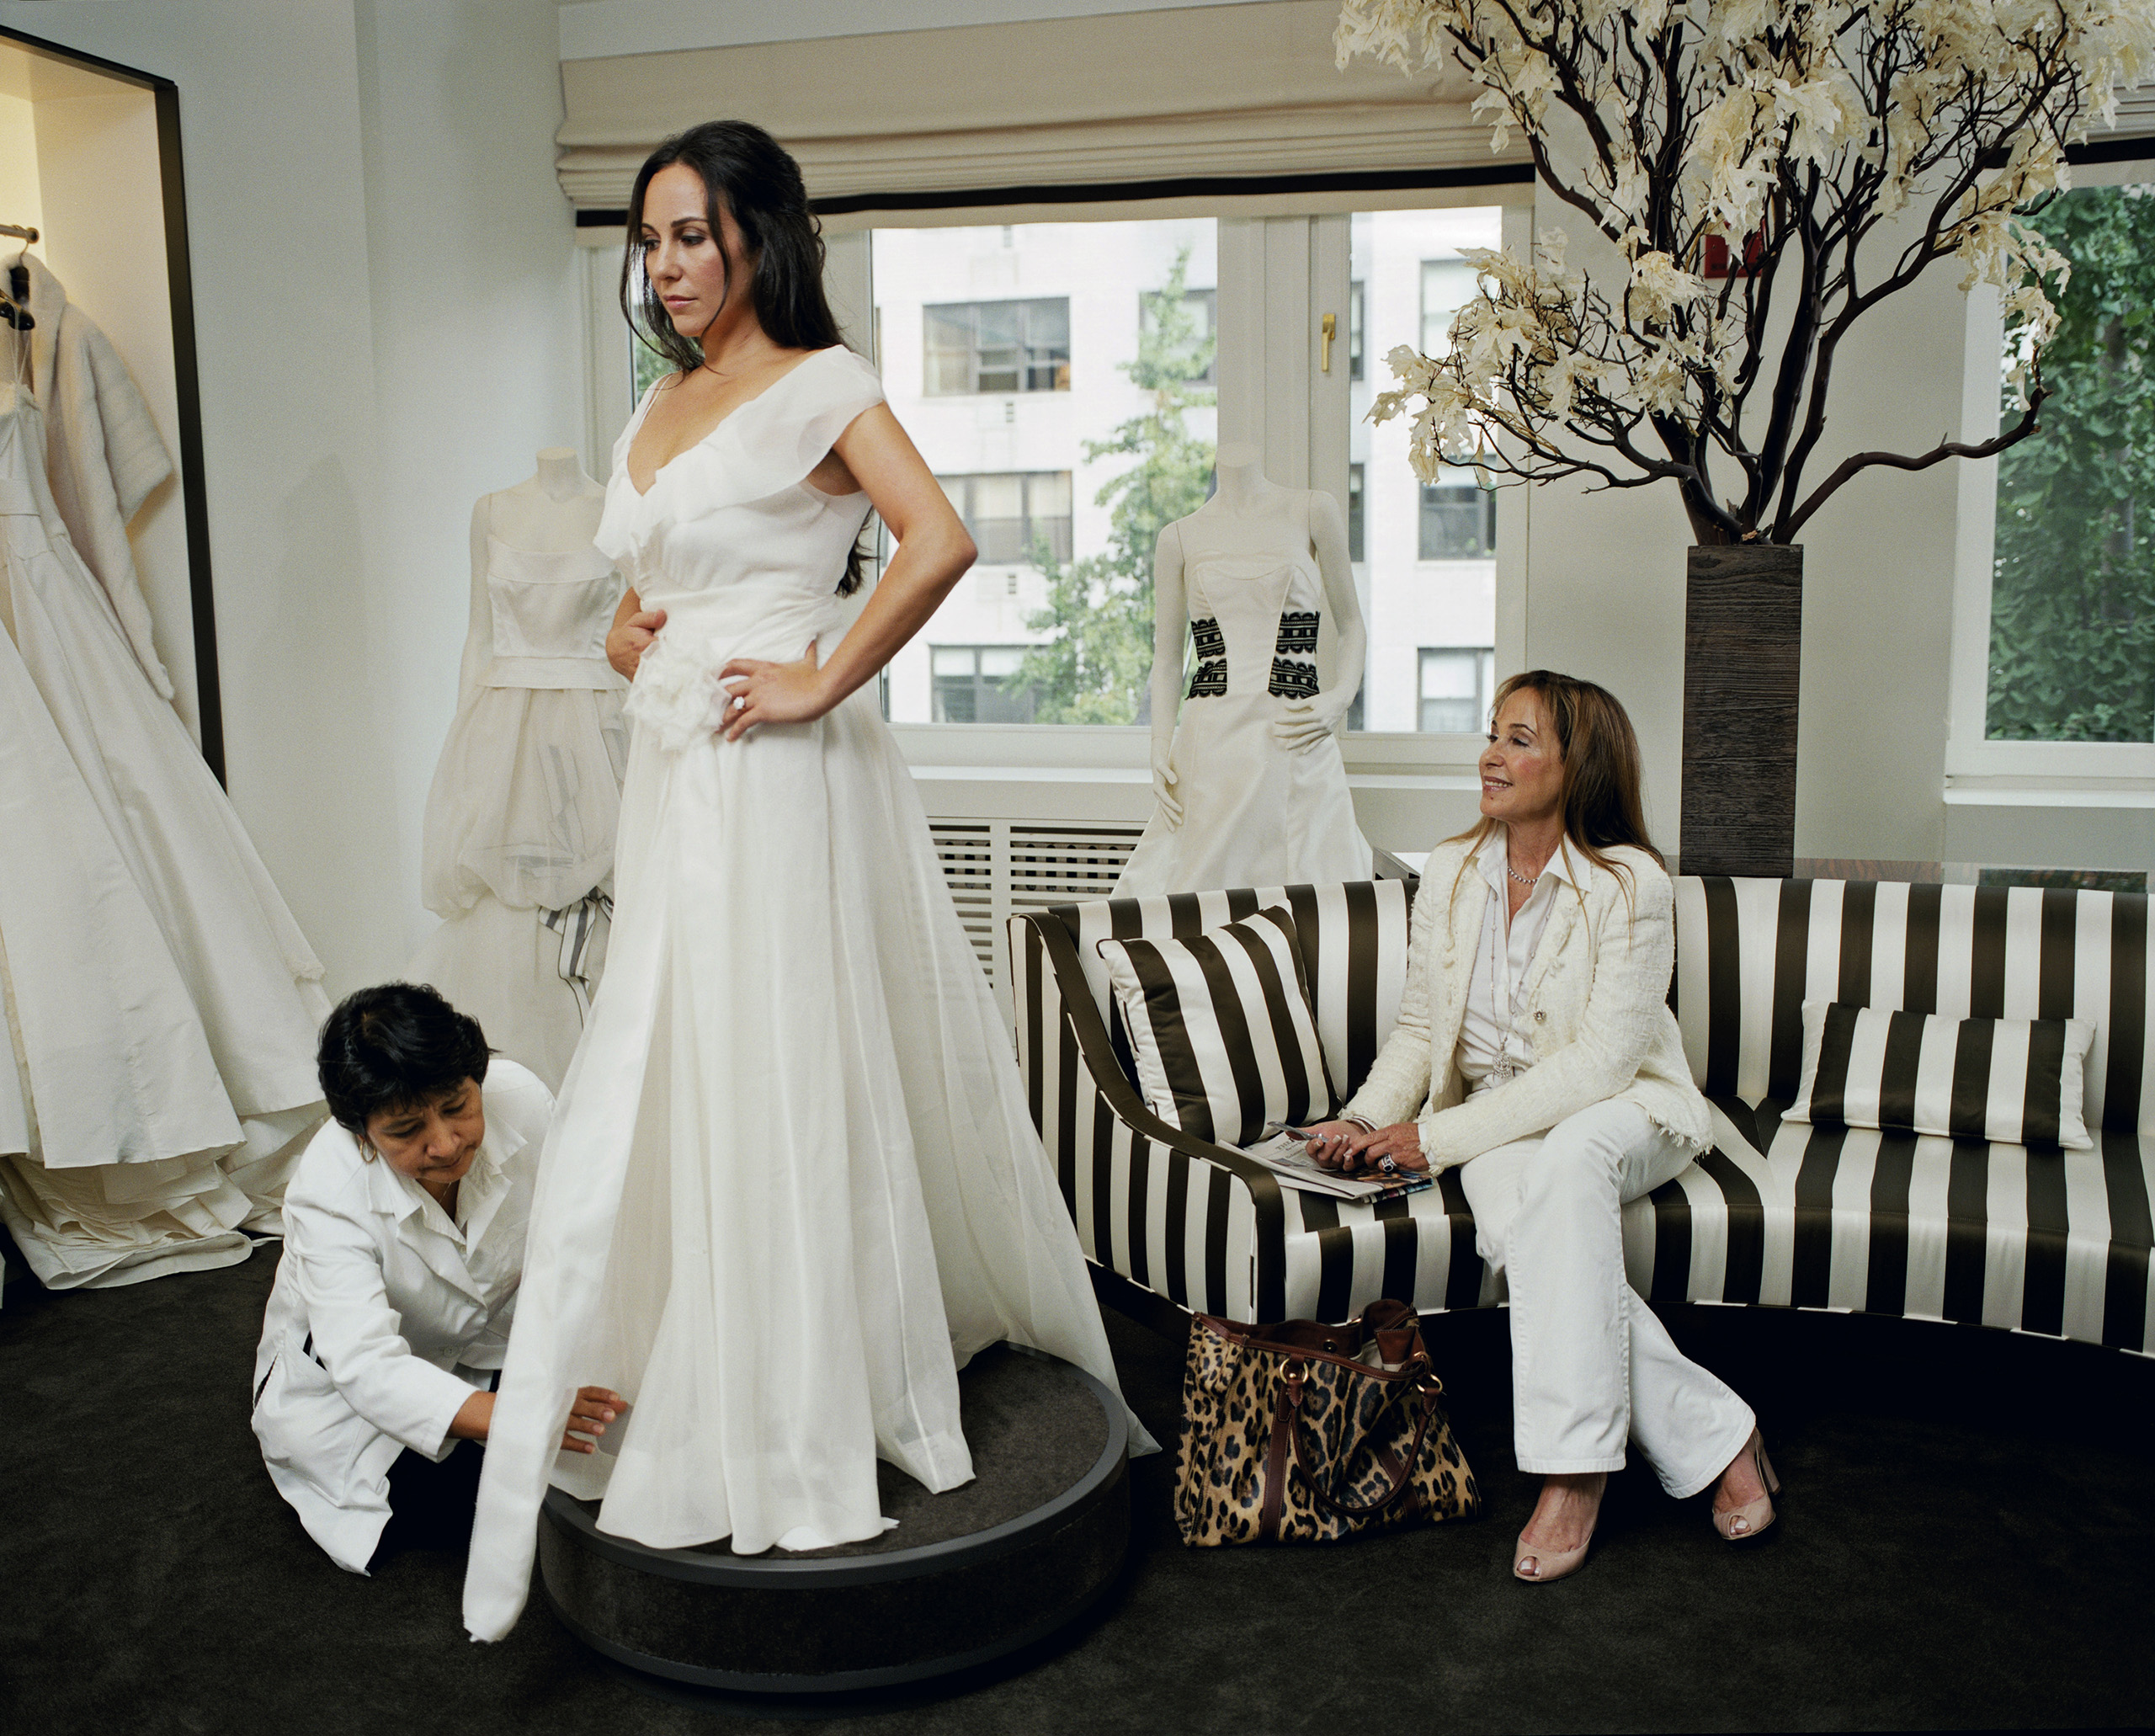 Wedding Dress Fitting from the series My American Life